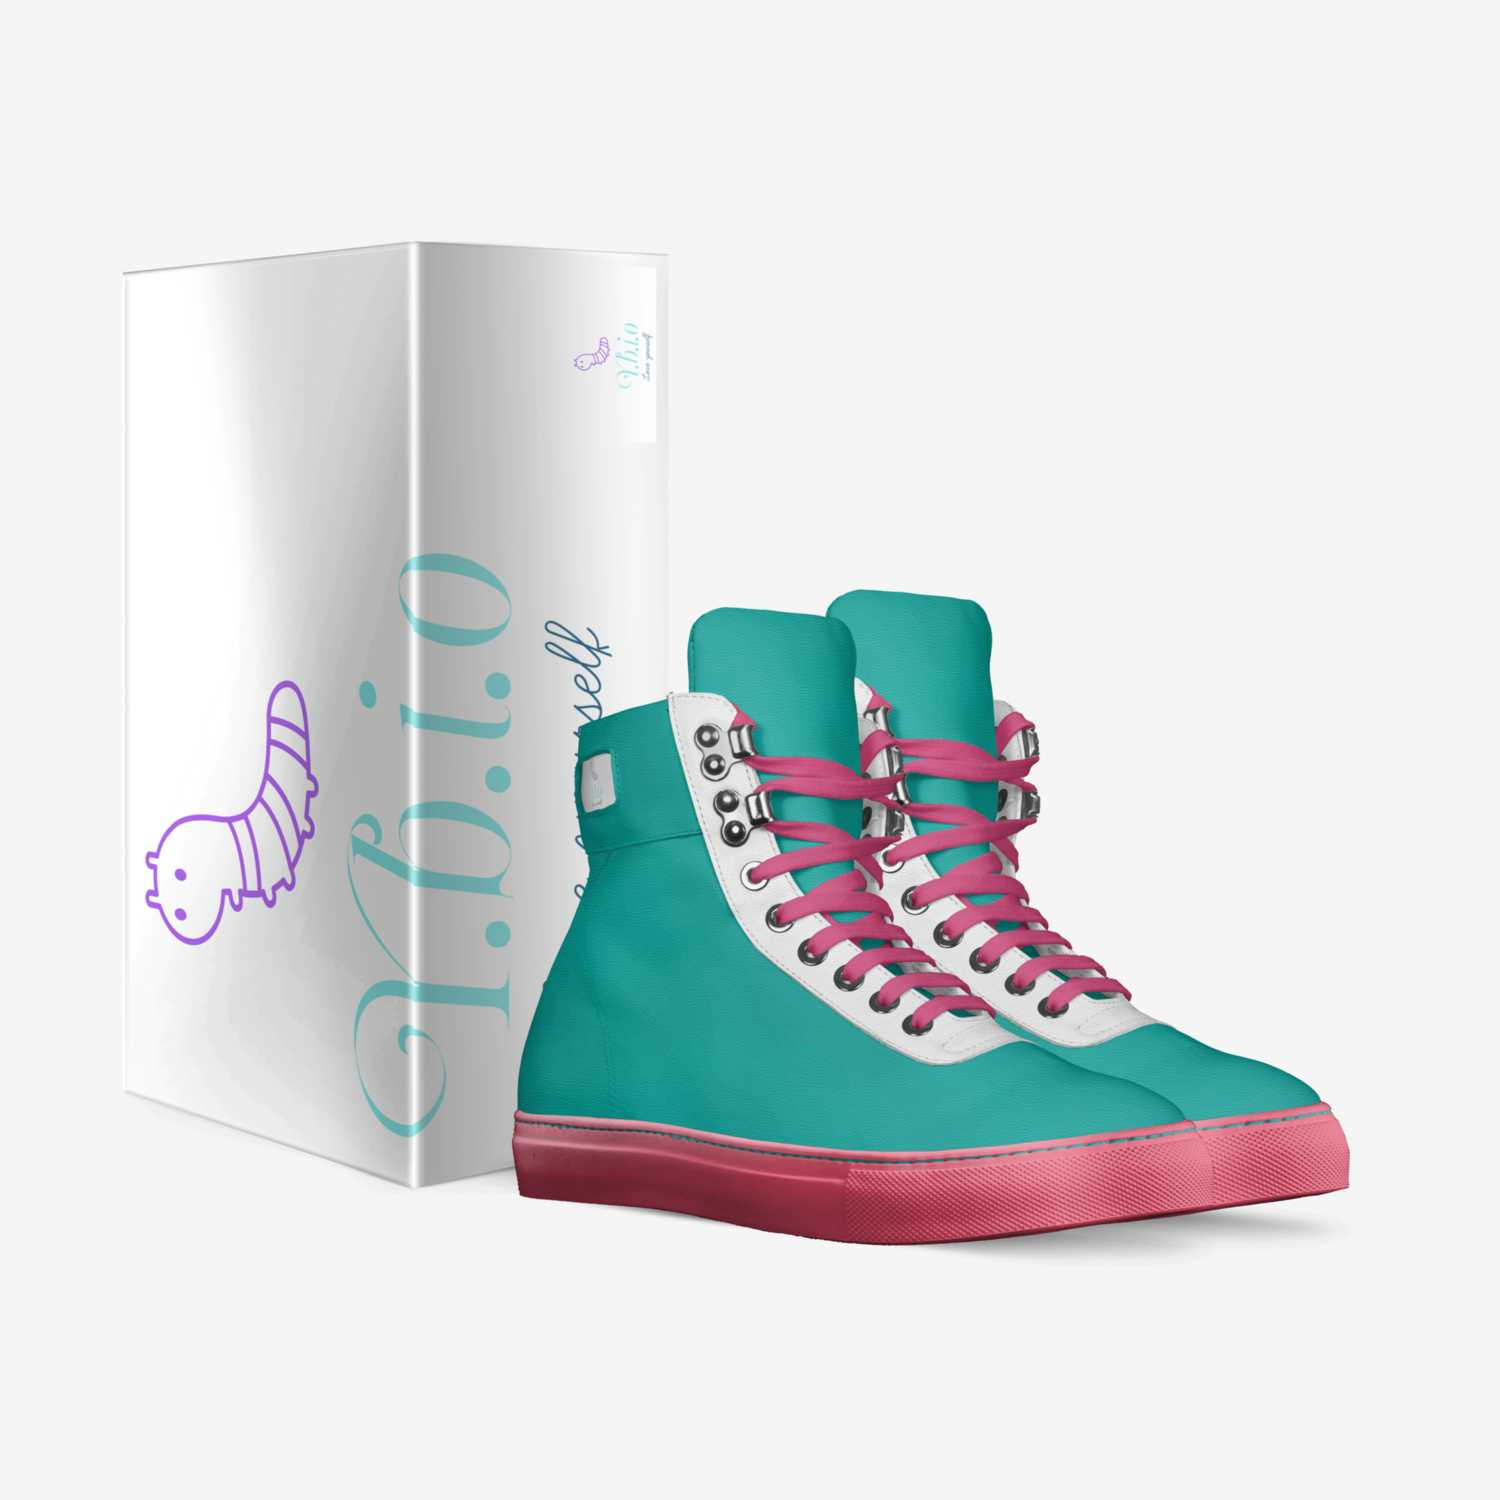 Y.B.I.O custom made in Italy shoes by Zachary Sanders | Box view